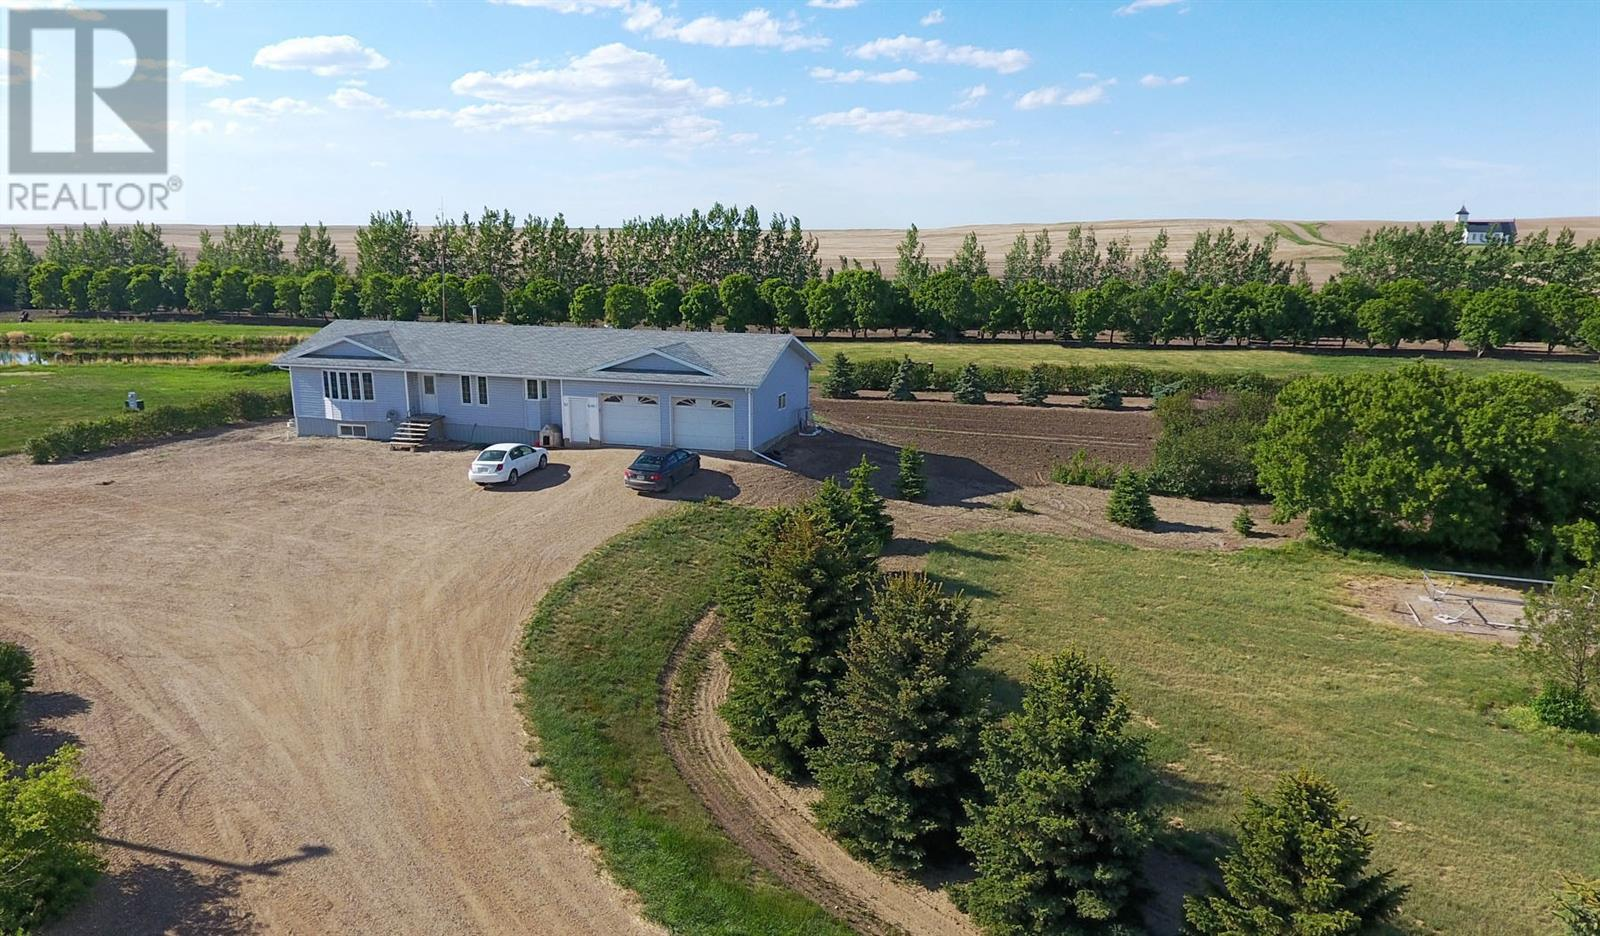 22 ST. ELIZABETH ROAD, glen bain rm no. 105, Saskatchewan